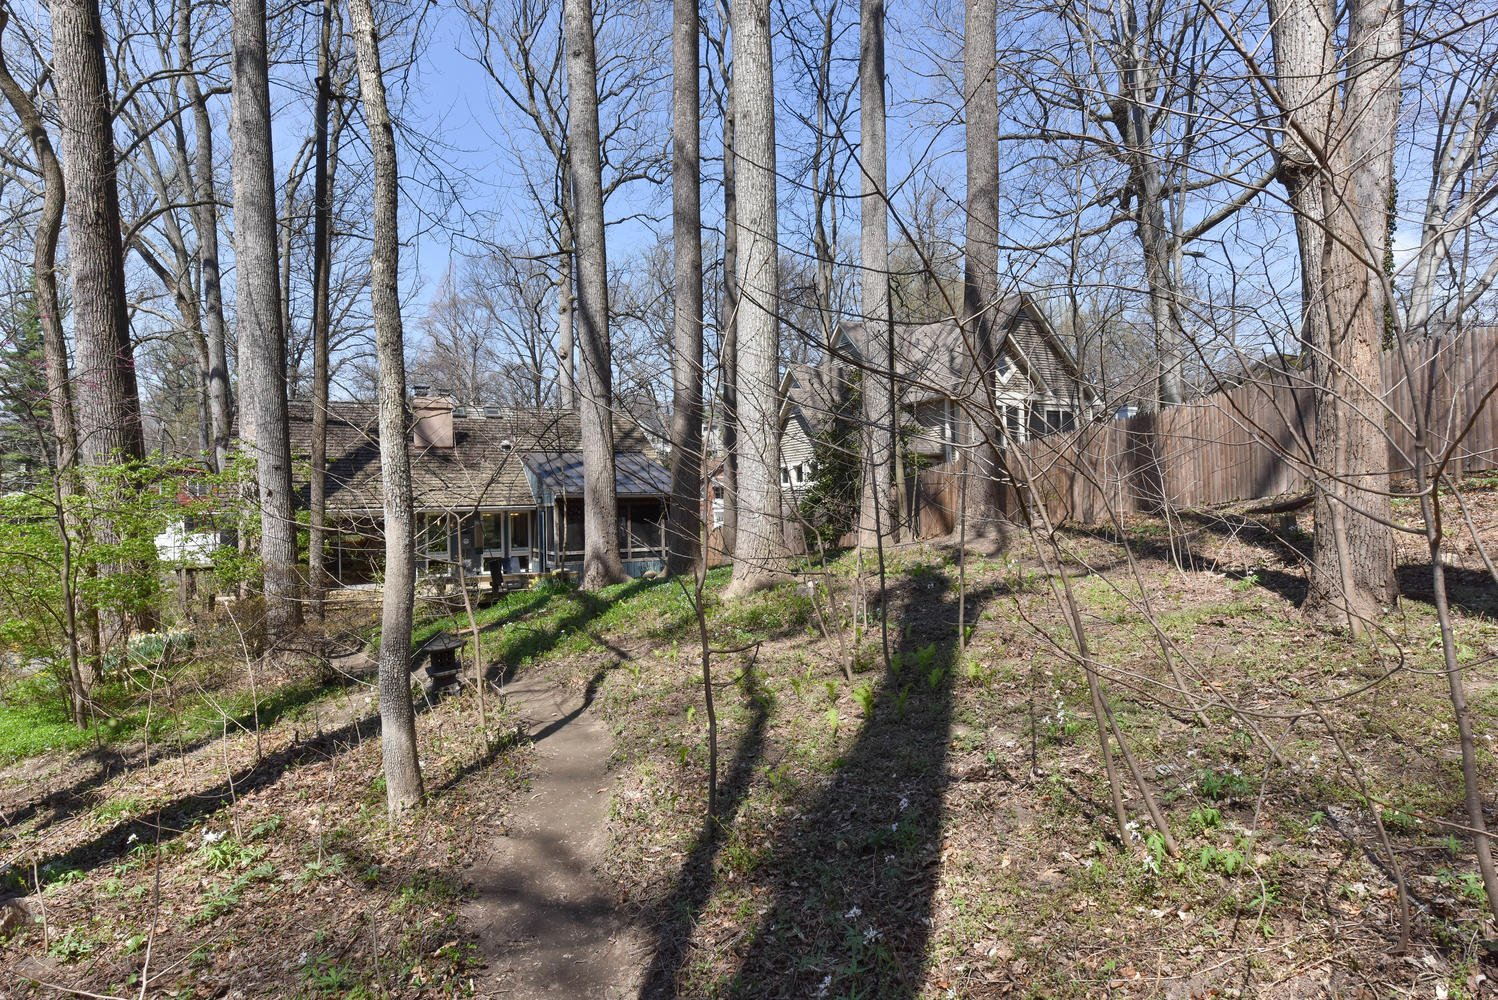 5313-Tuscarawas-Rd-Bethesda-MD-large-052-43-DSC-8549-1499x1000-72dpi